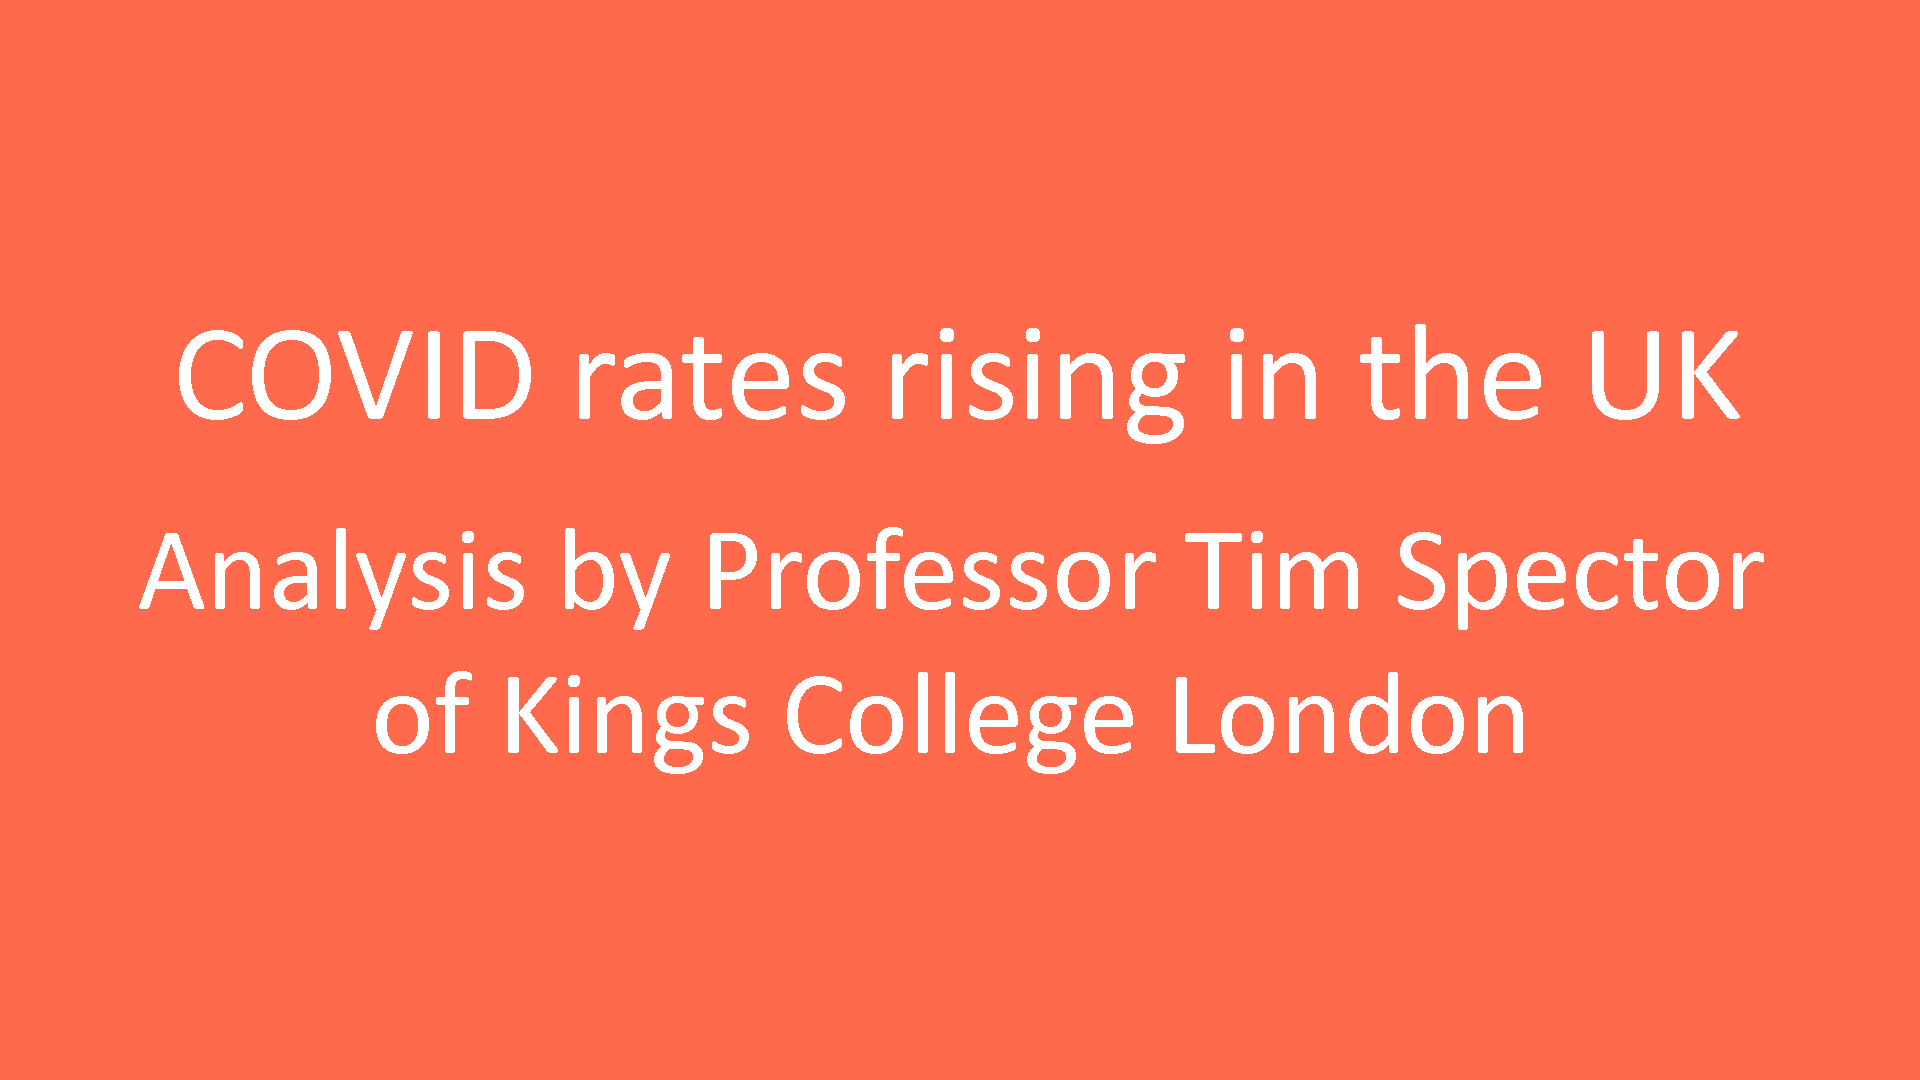 Covid cases rising in the UK